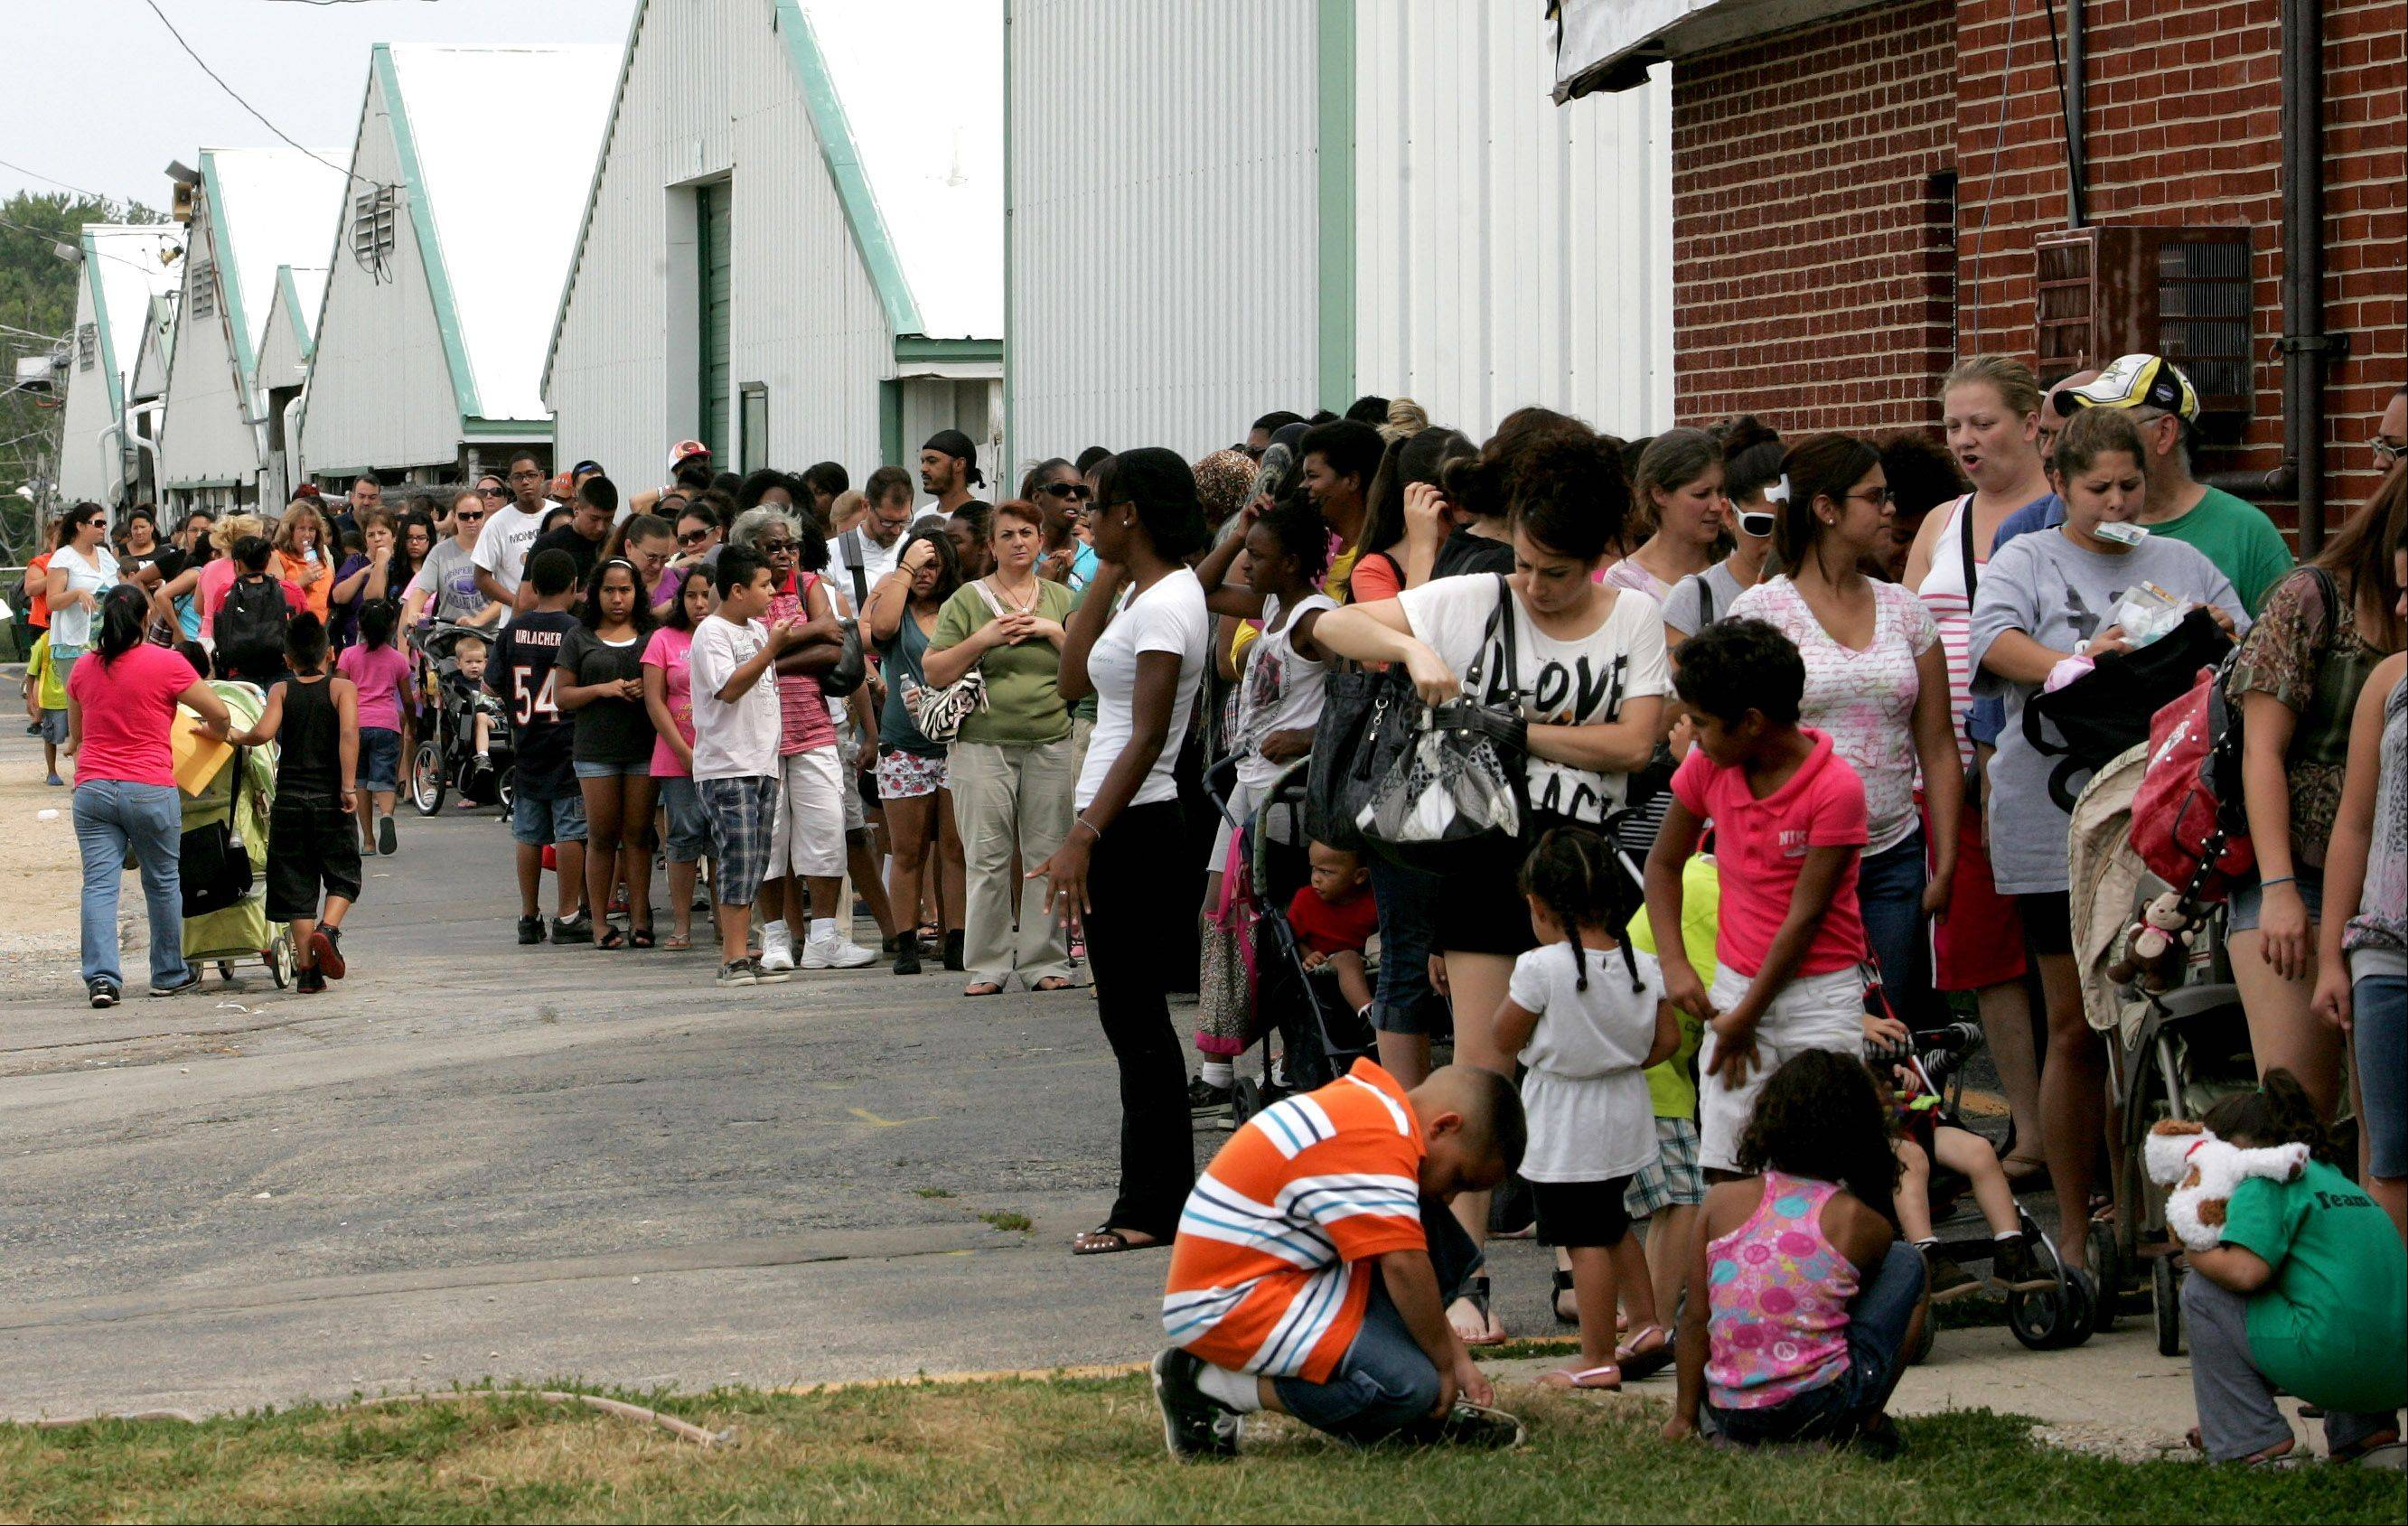 "Hundreds line up Wednesday at the DuPage County Fairgrounds in Wheaton to attend Catholic Charities' Back to School Fair. ""It gives them resources they might not otherwise have,"" said Deloris Walker, human resources coordinator with Catholic Charities."